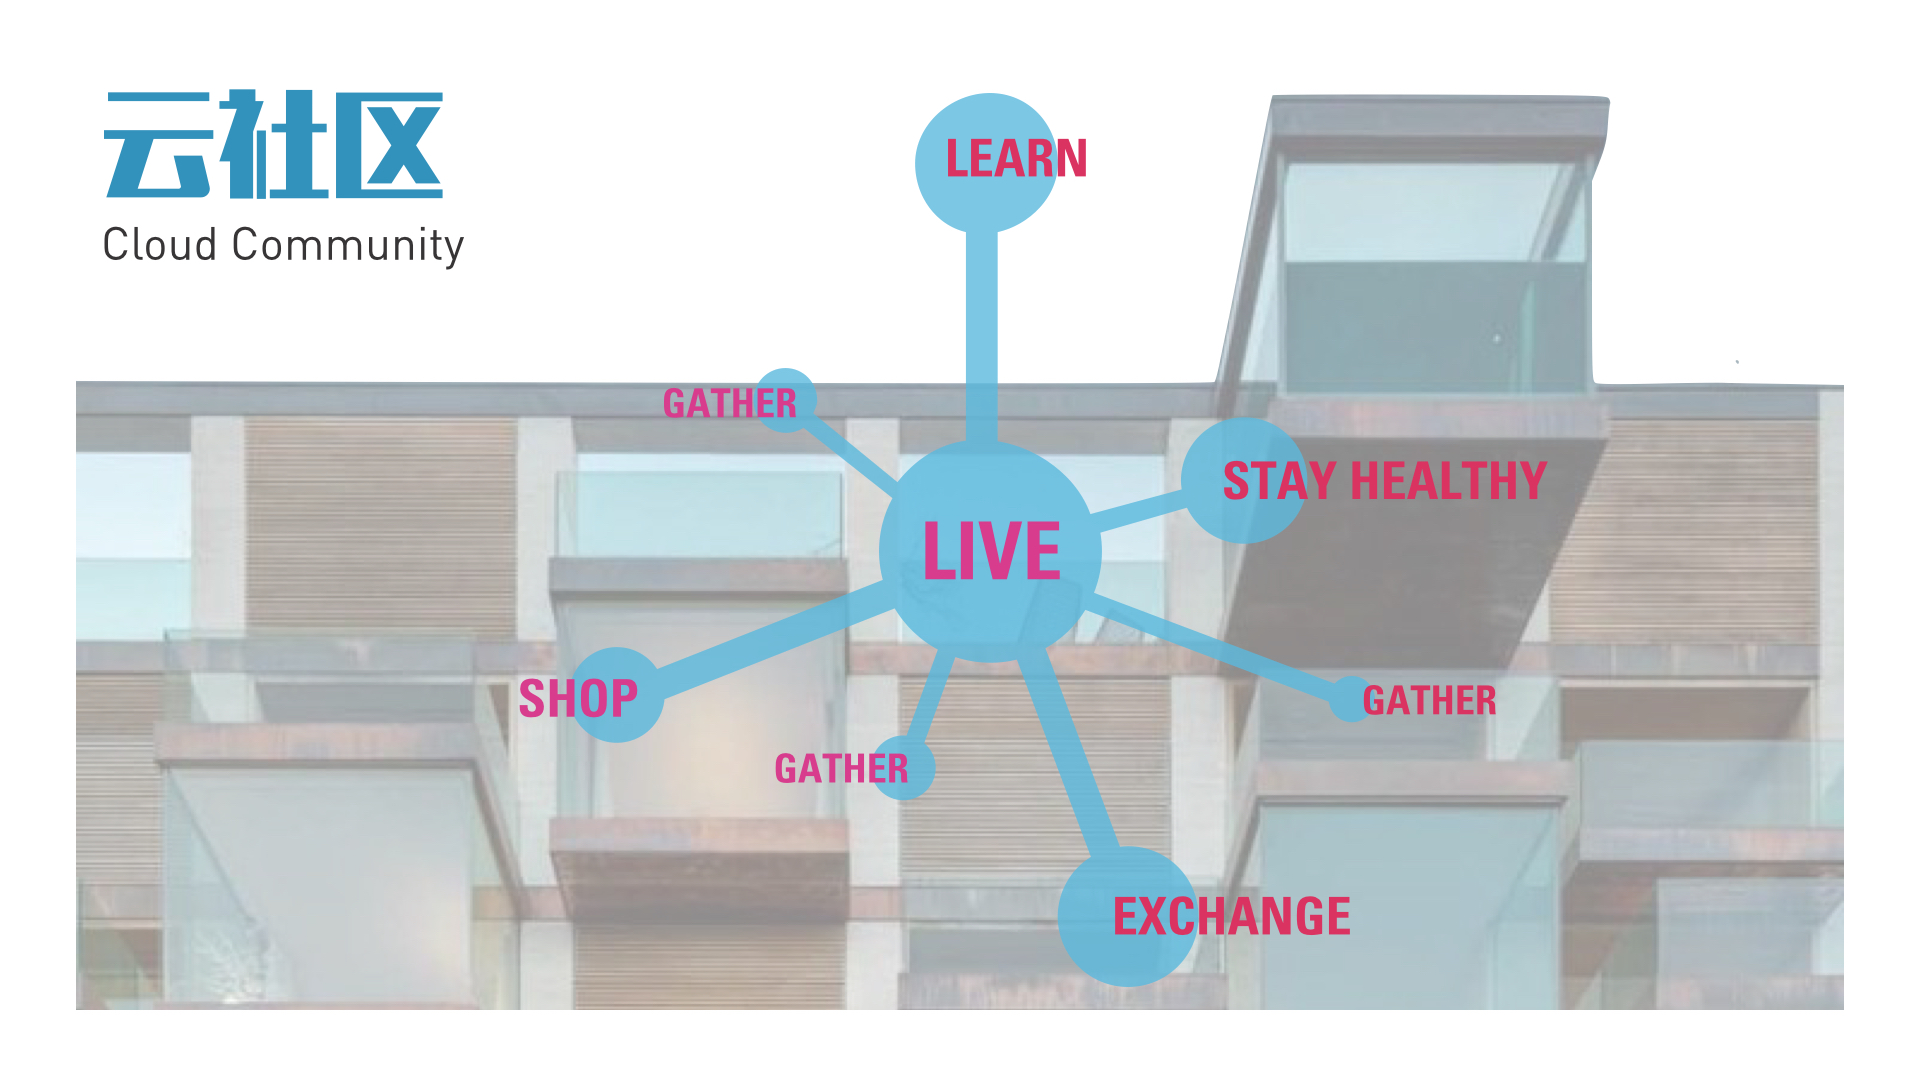 Cloud Community stores all resident's information on CLOUD, it allow residents to live, learn, shop, stay healthy, exchange, and gather all in one space.